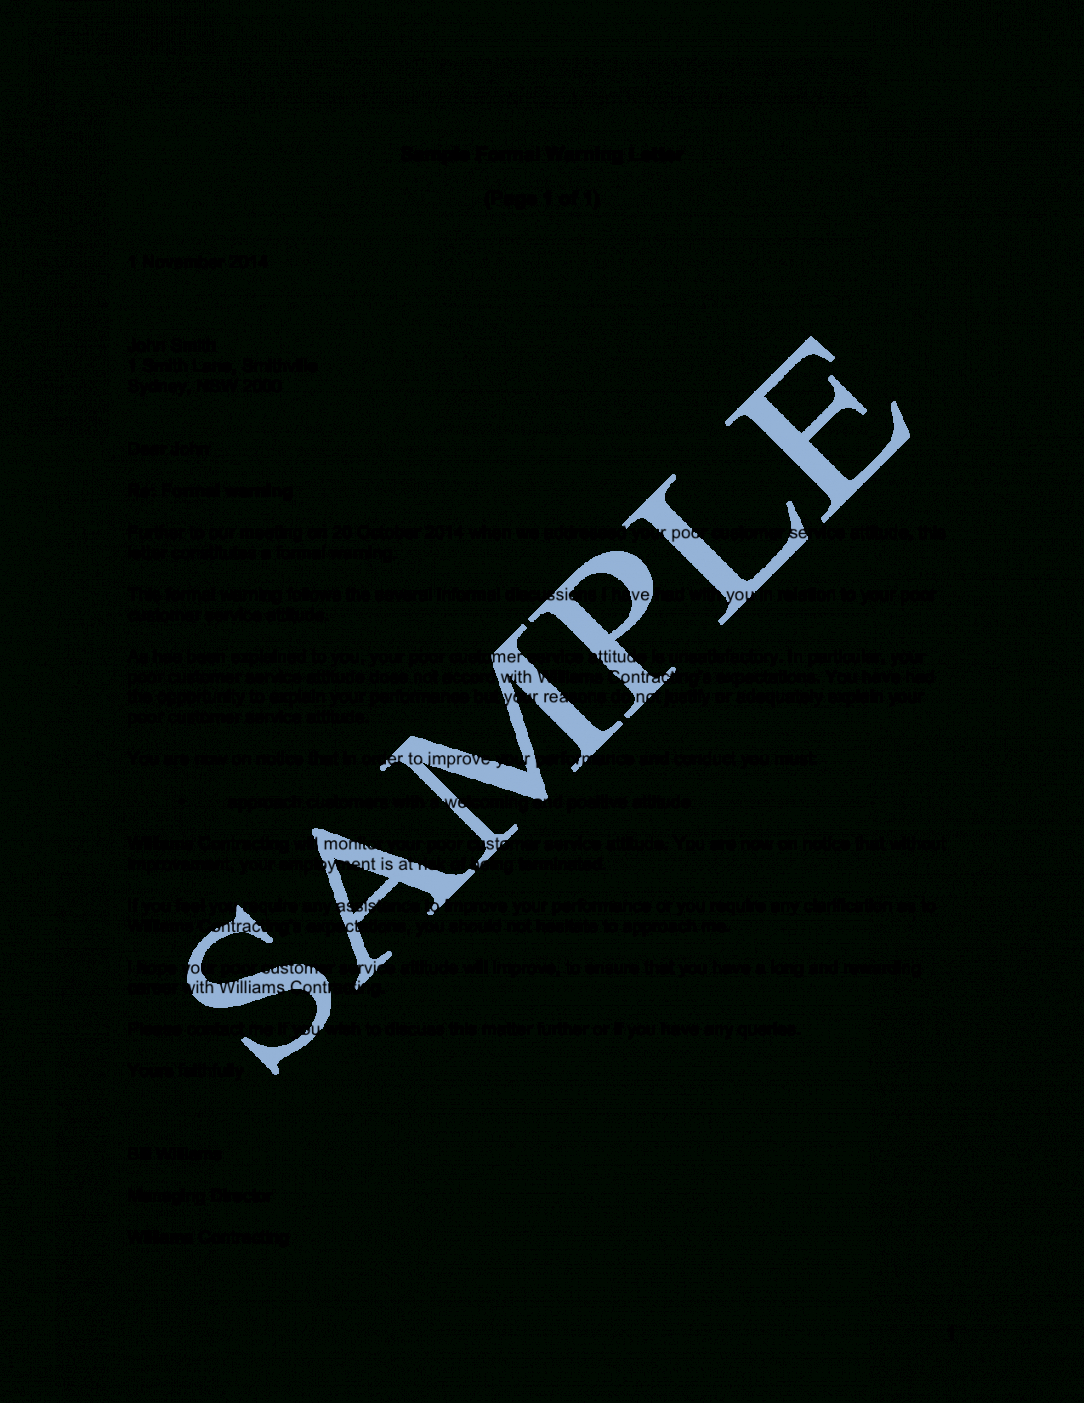 formal warning letter sample  lawpath franchise agreement letter sample